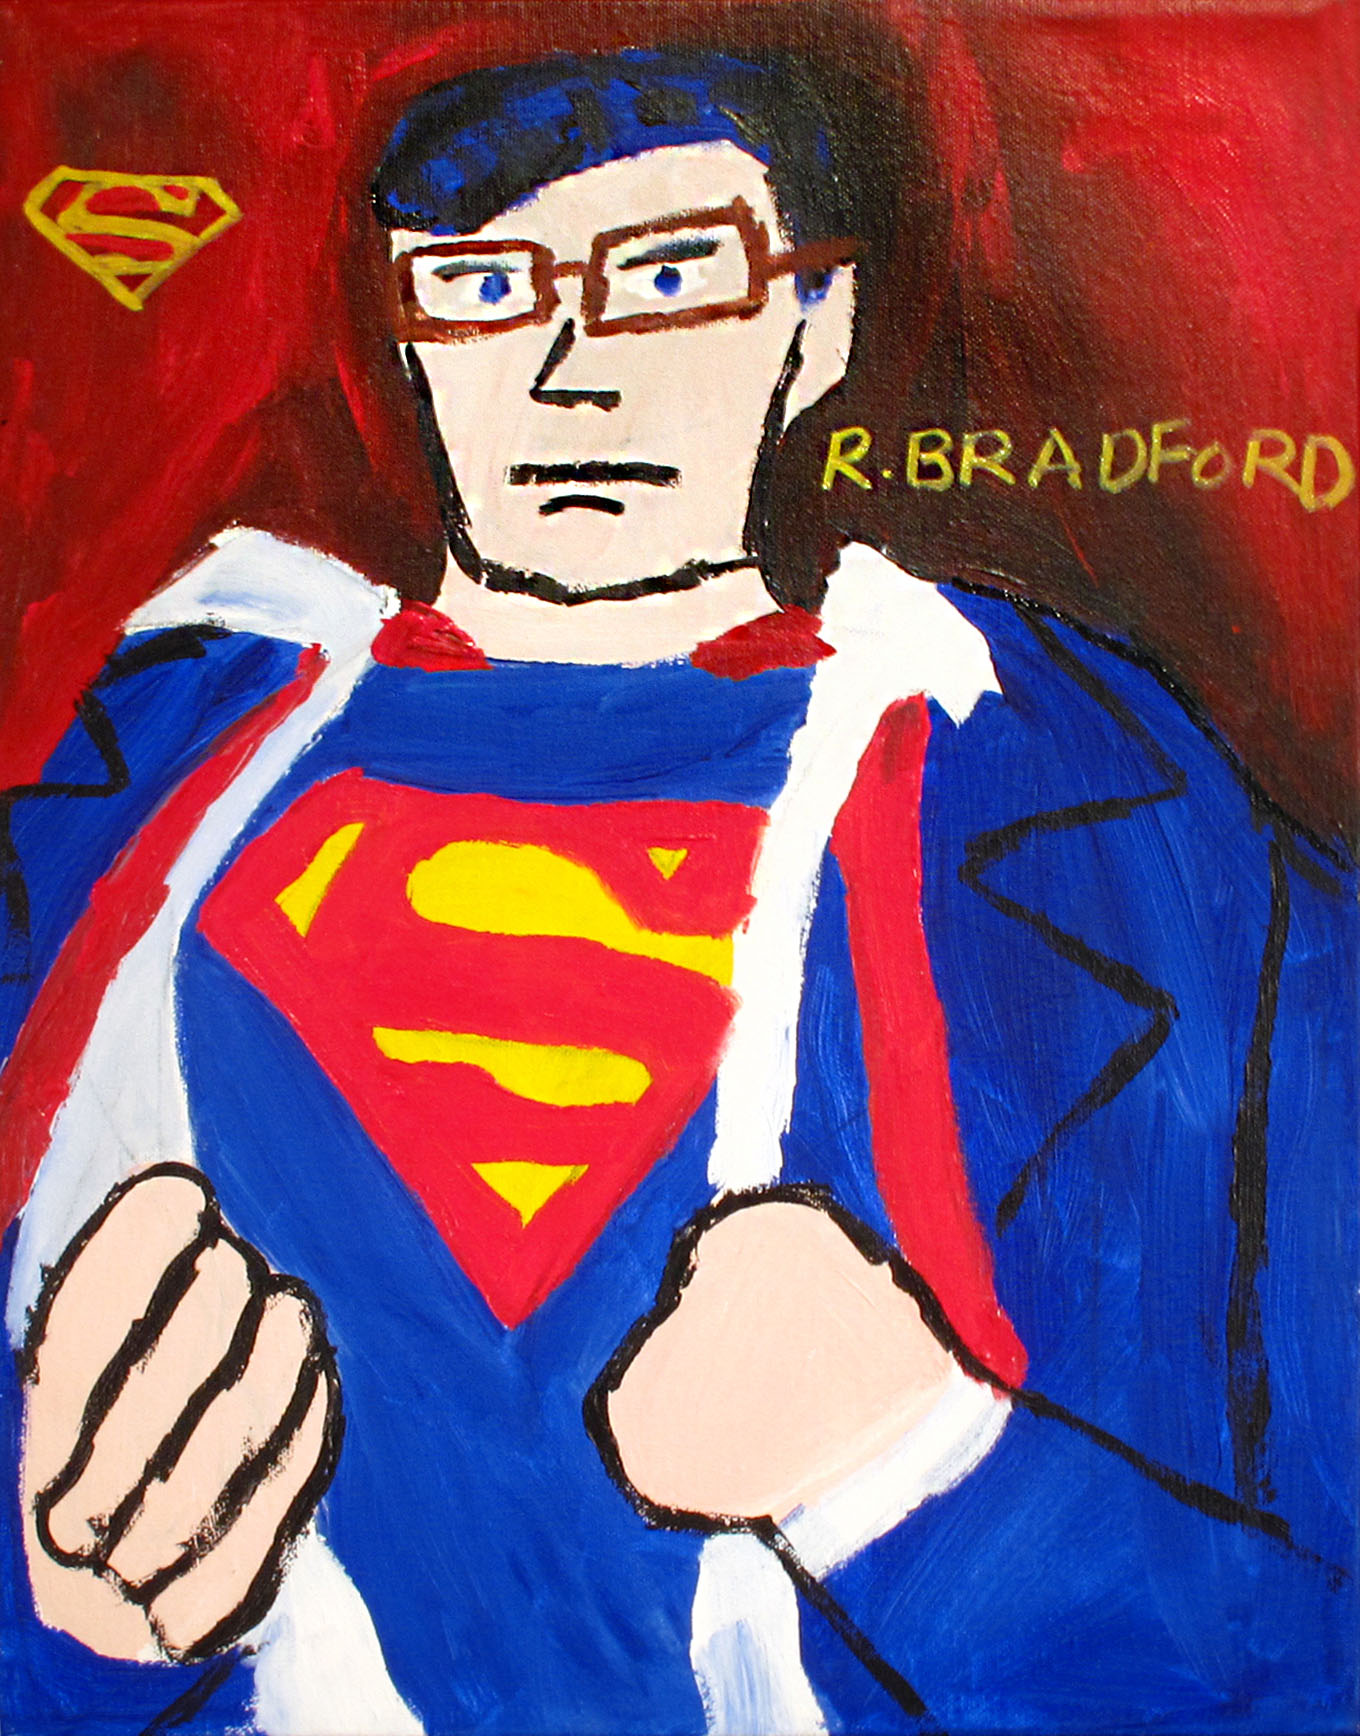 Ruby Bradford Superman with Glasses